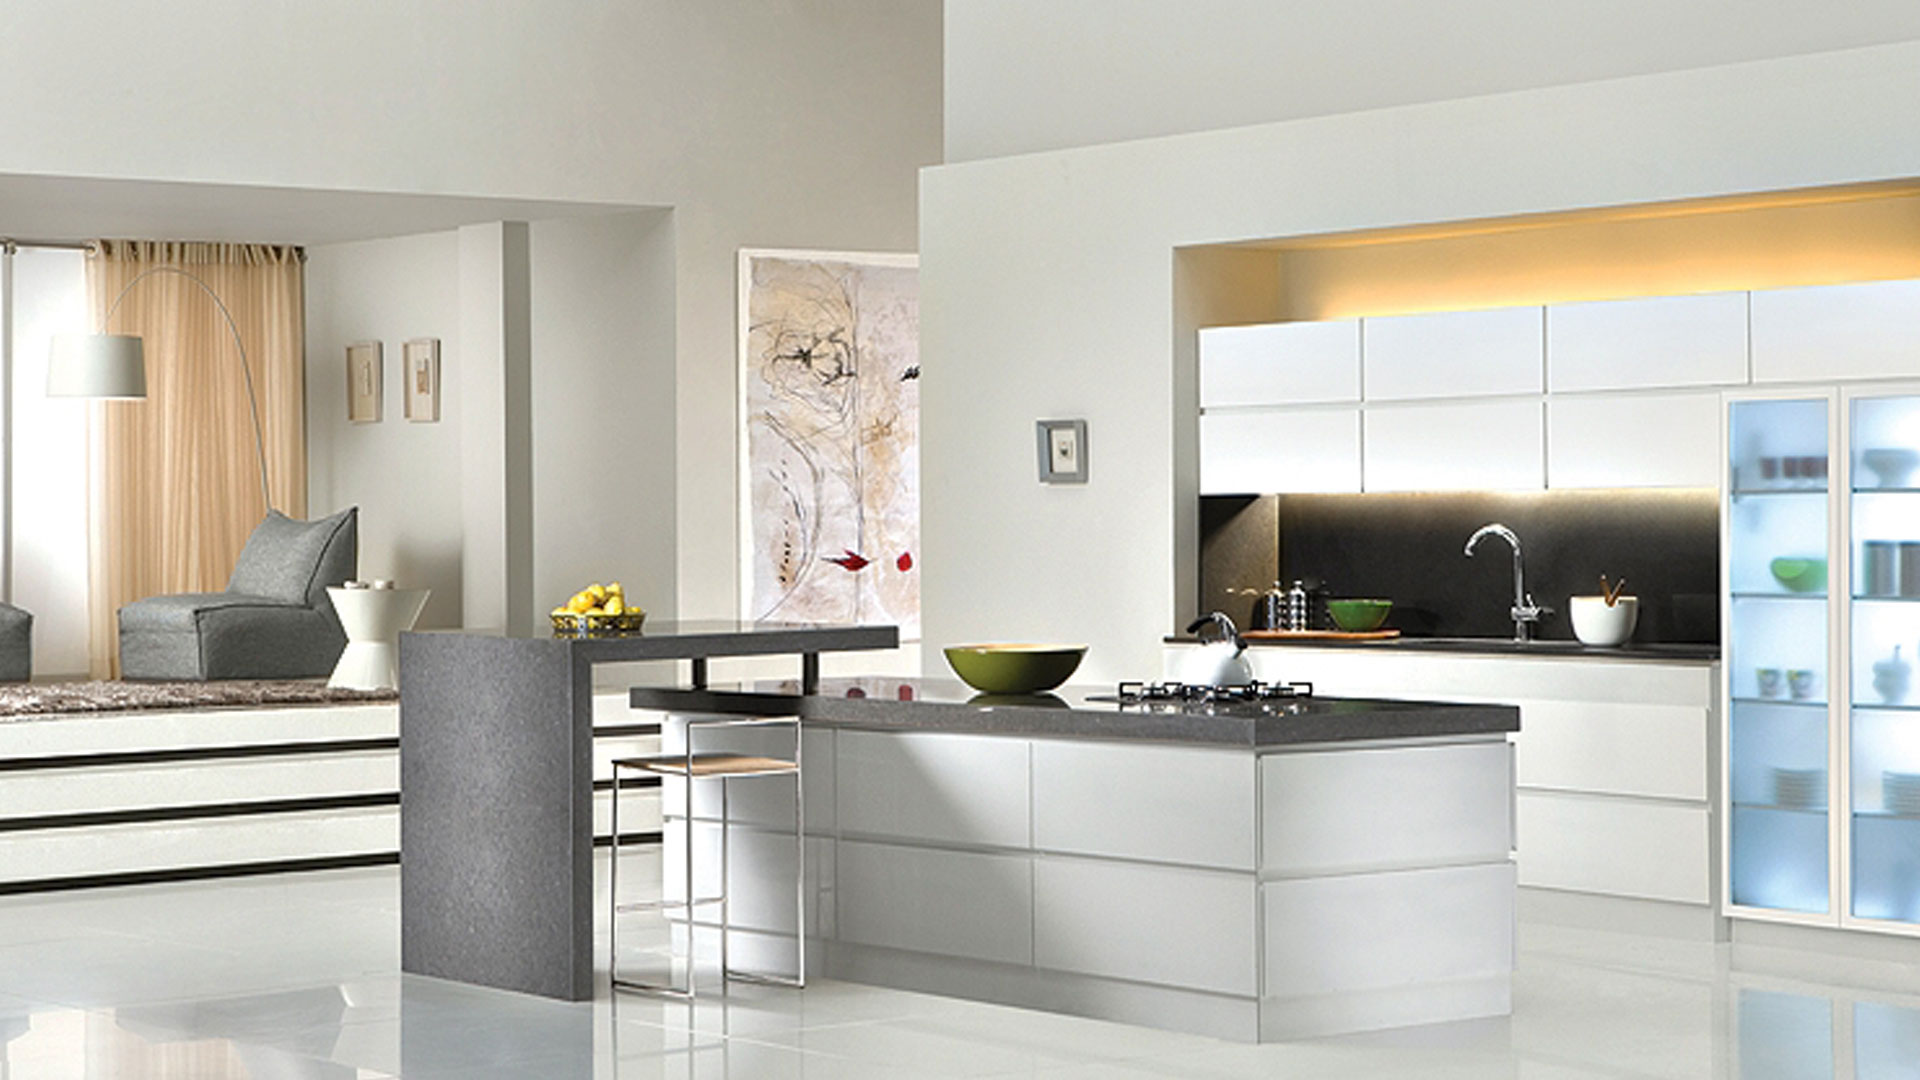 kitchen design trends kitchen design concepts Kitchen design concepts edition